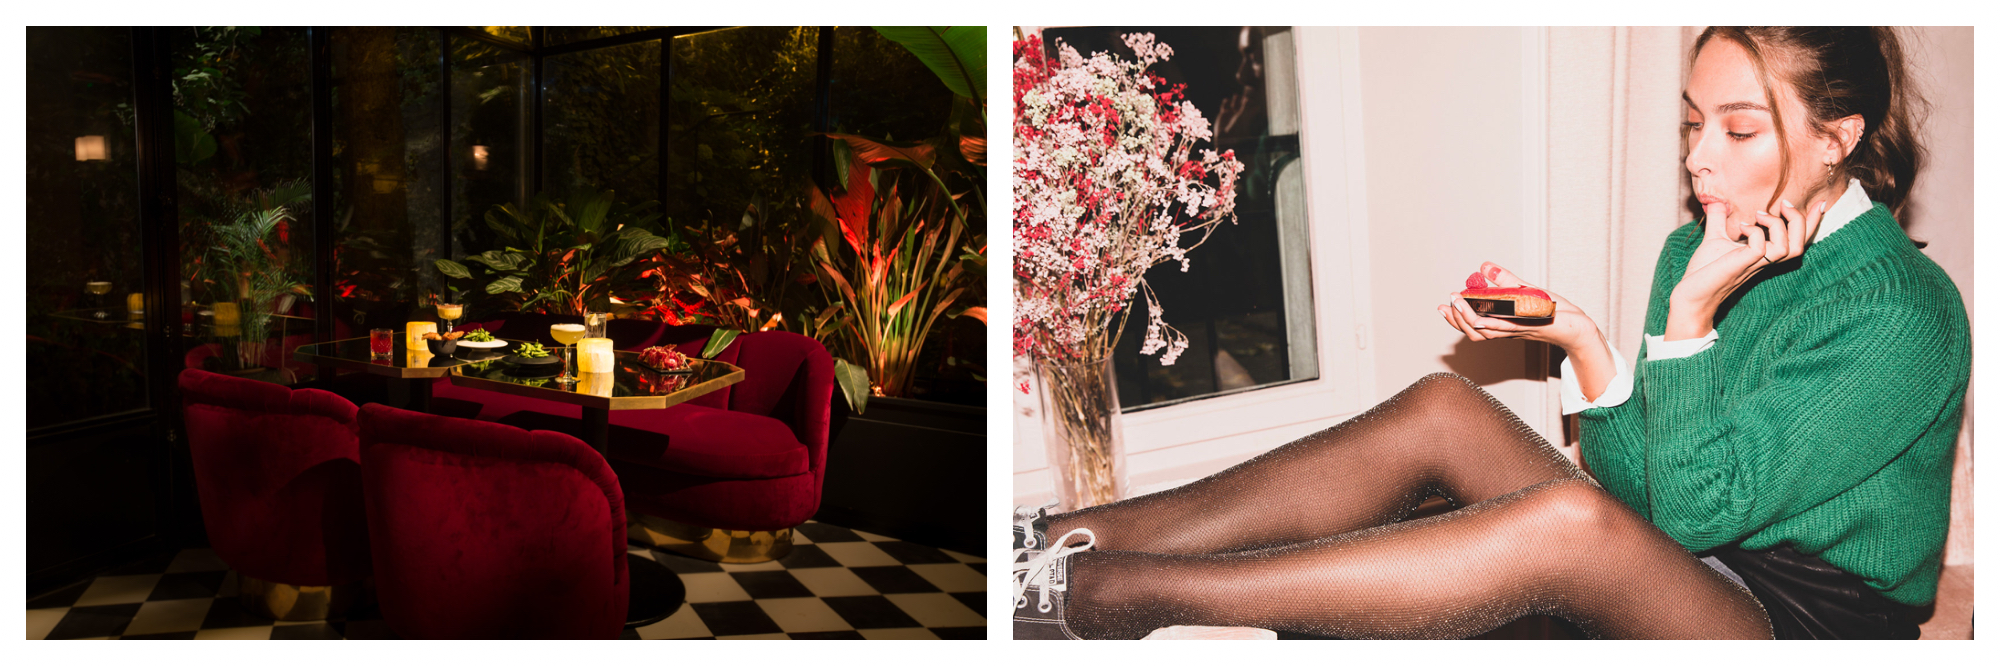 The interior of a conservatory bar at night, red velvet seats, black and white tiled floor, plants outside the glass windows and cocktails on the table (left). A woman with her feet up on a table eating a cake (right).